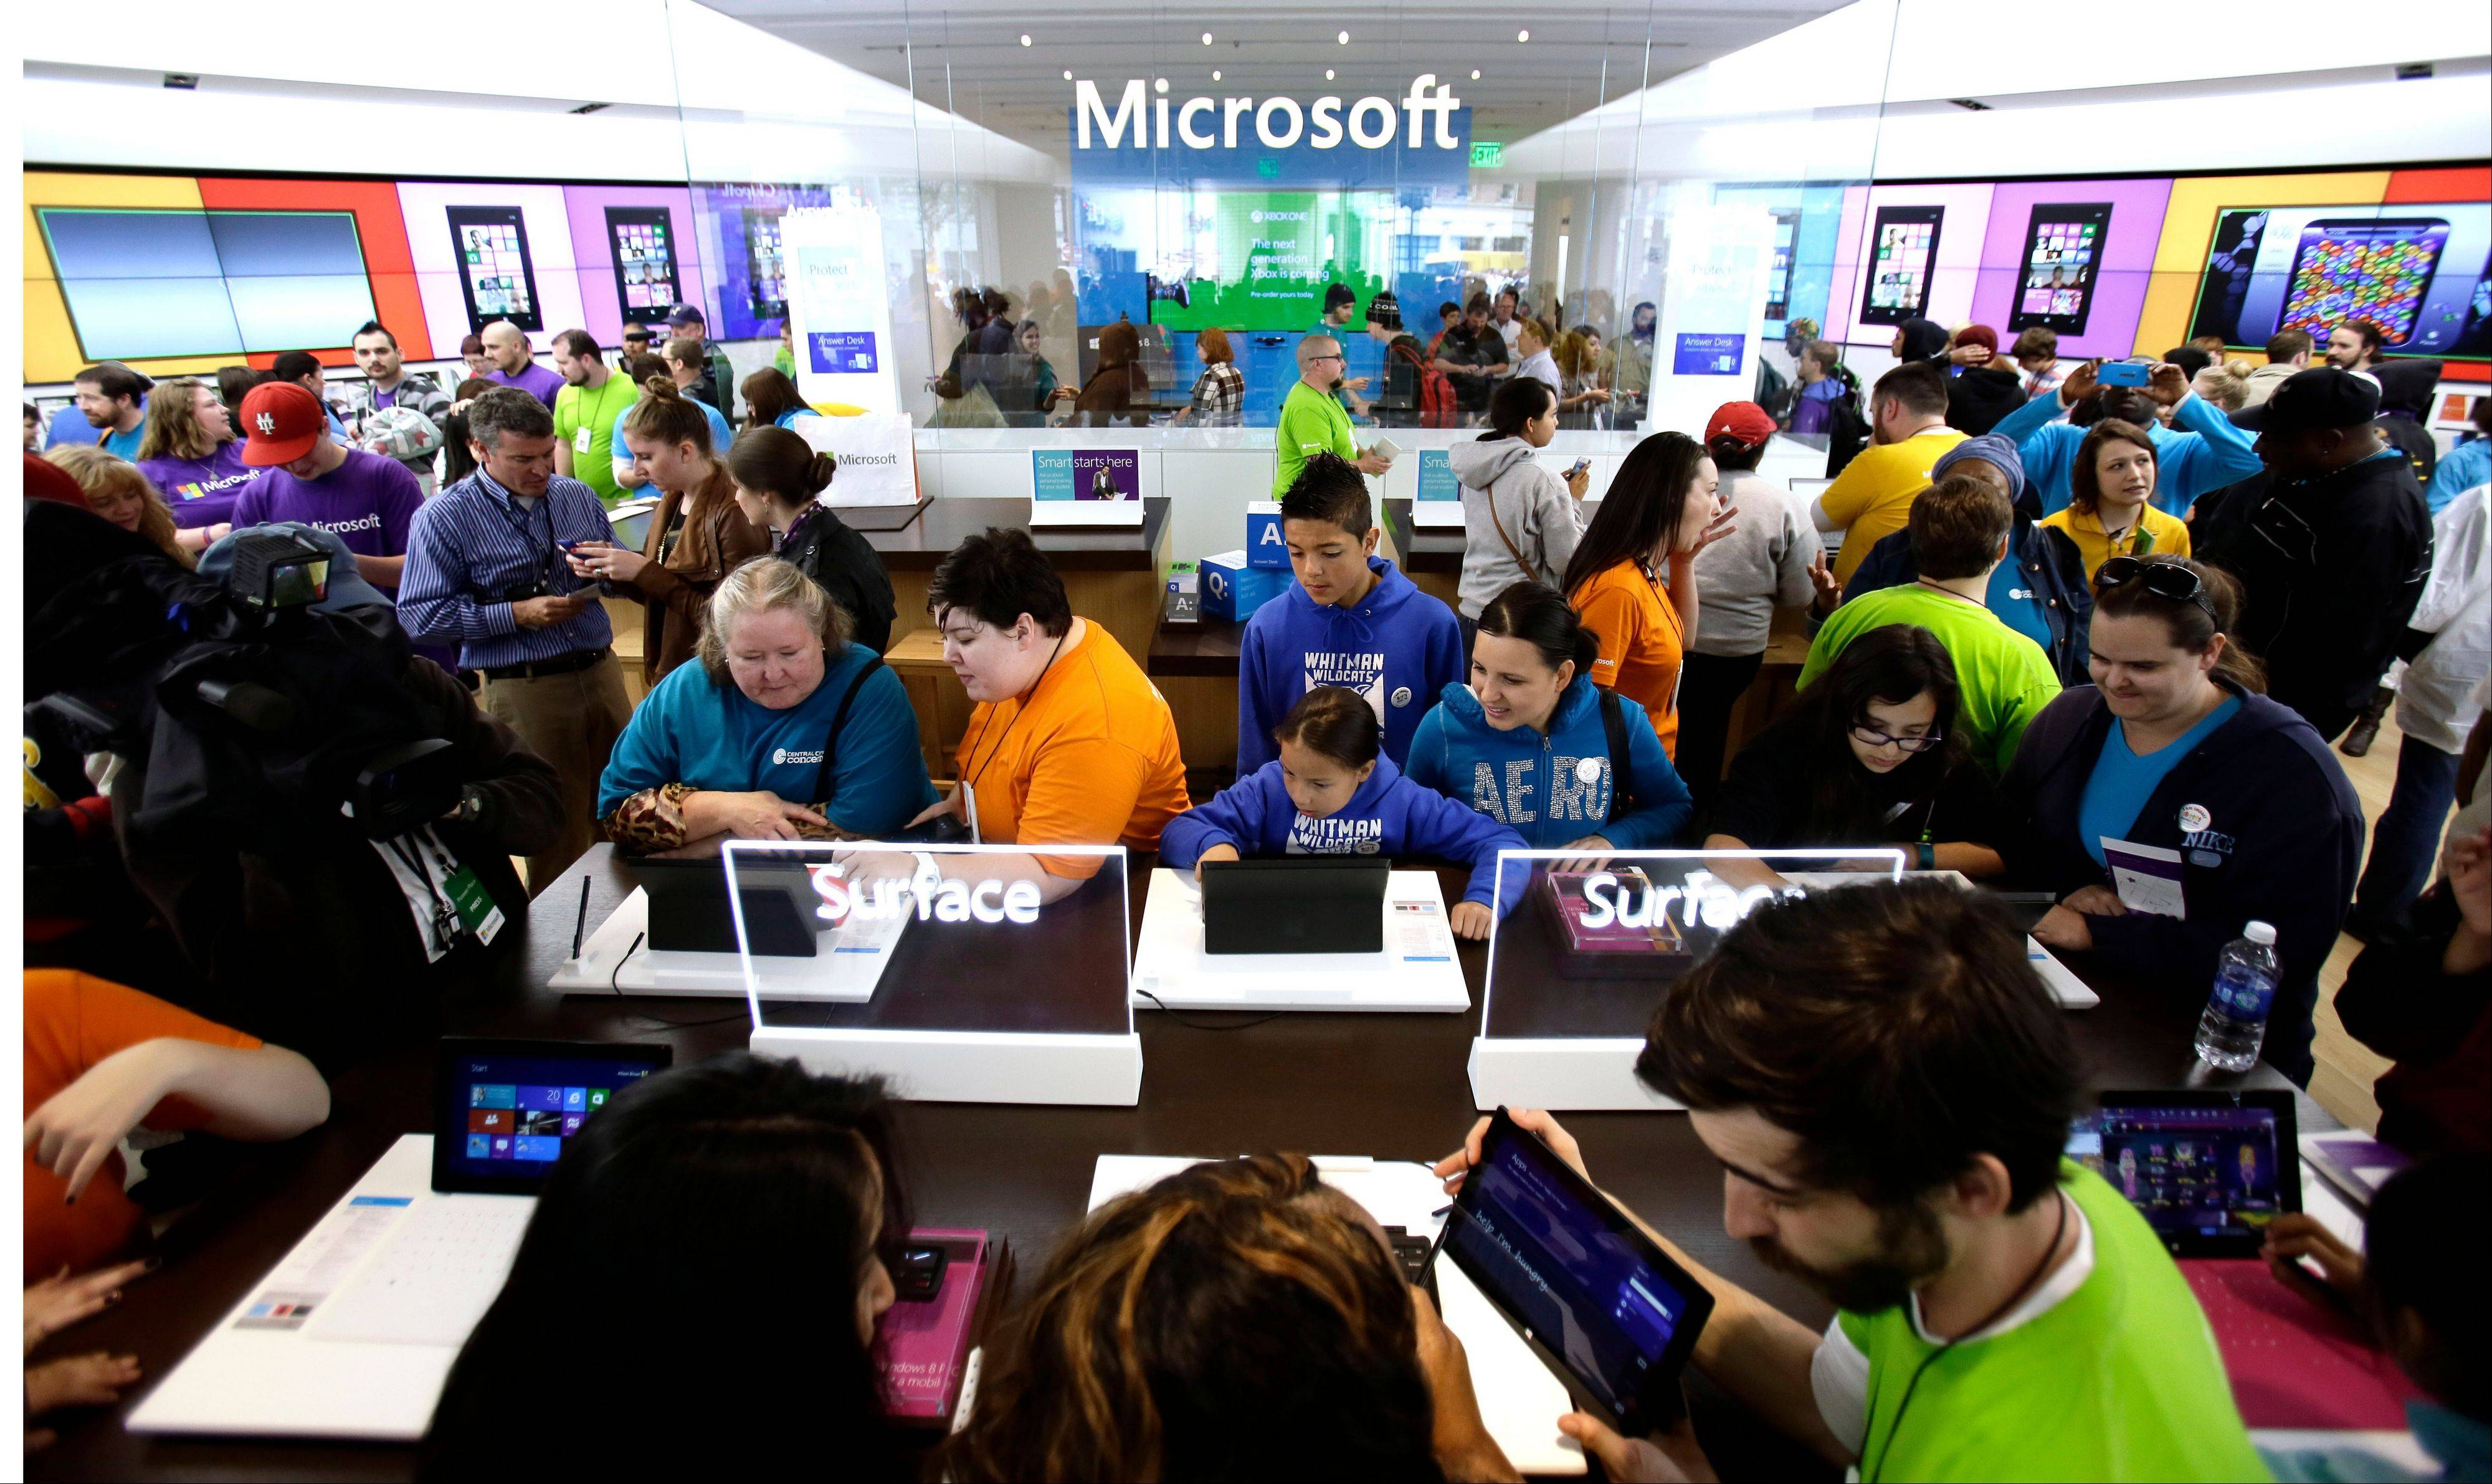 Associated Press/June 20, 2013People crowd the aisles during the grand opening of a Microsoft retail store in downtown Portland, Ore.